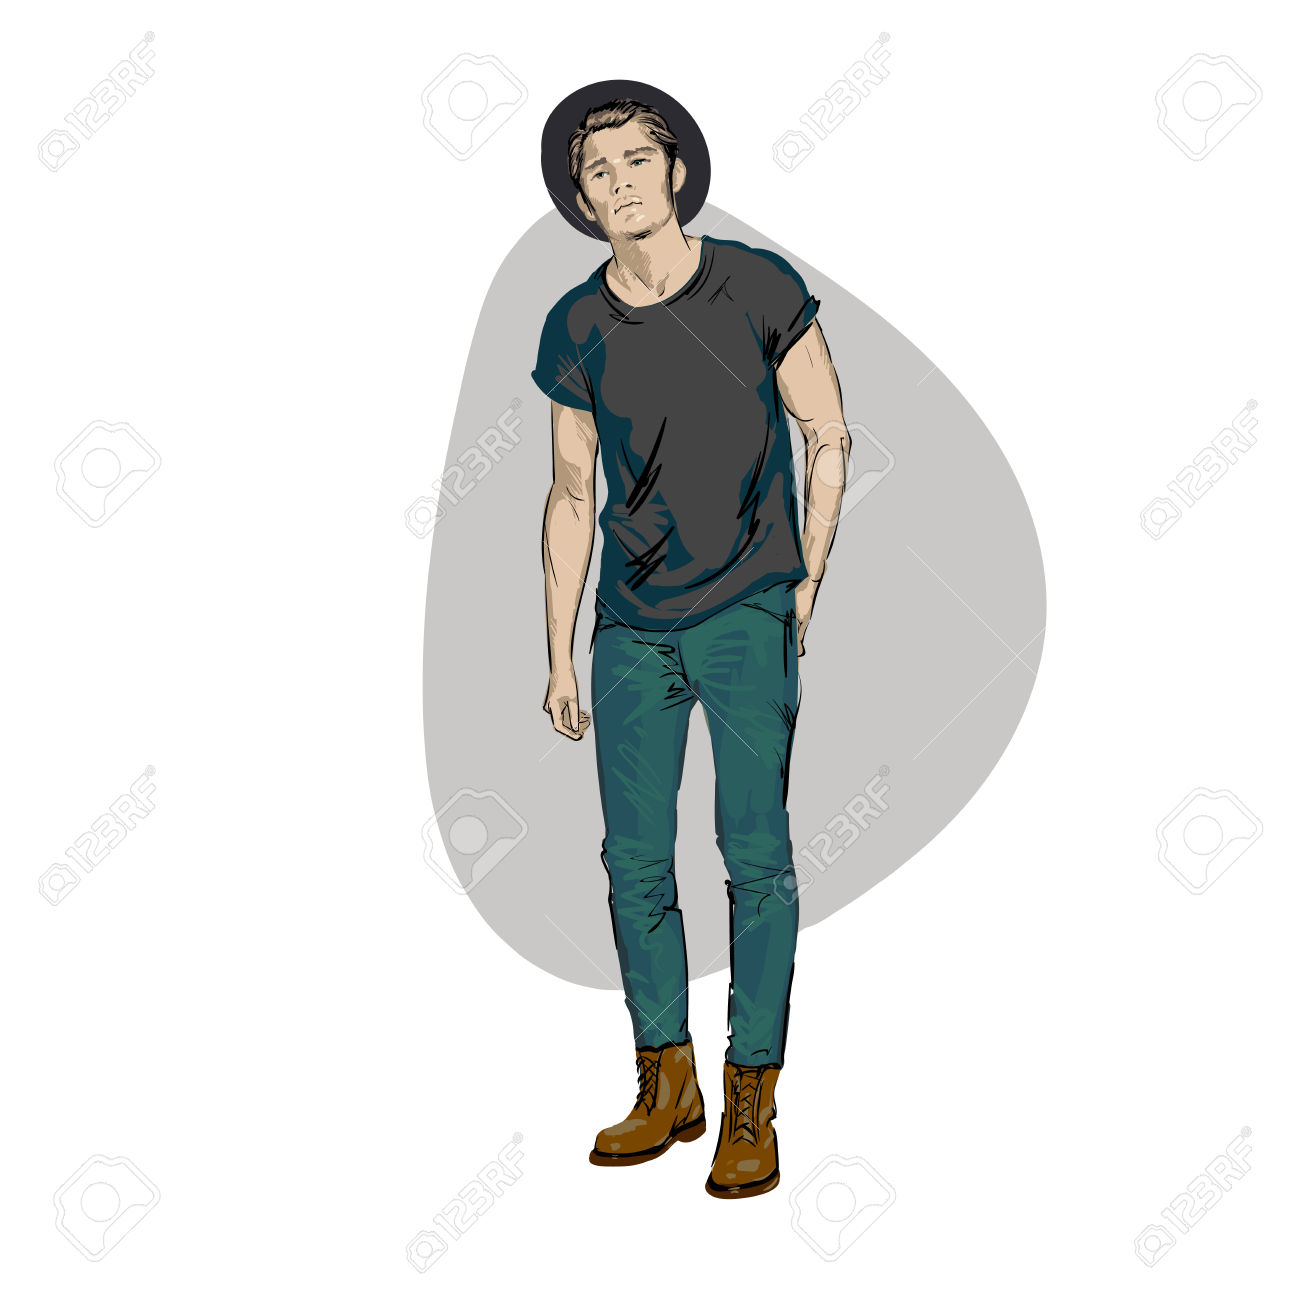 4,852 Wearing Jeans Cliparts, Stock Vector And Royalty Free.